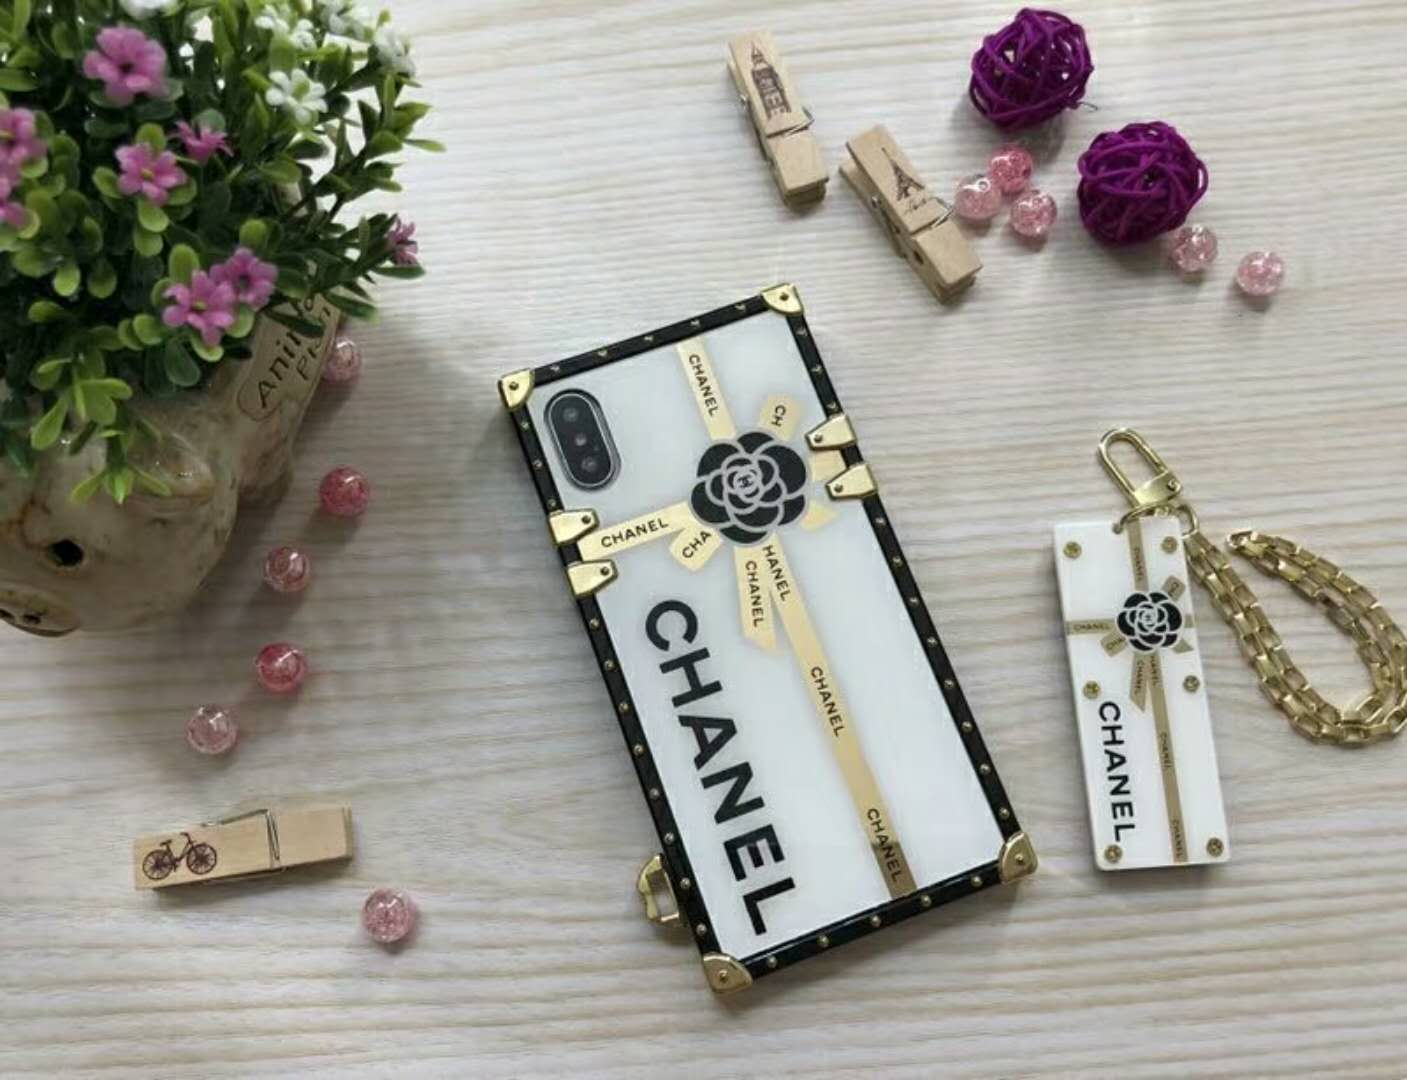 Designer Phone Case for IphoneXSMAX XR XS Iphone7P/8P Iphone7/8 6P/6sP 6/6s Fashion Brand Full Cover Luxury Phone Case with Protective Film